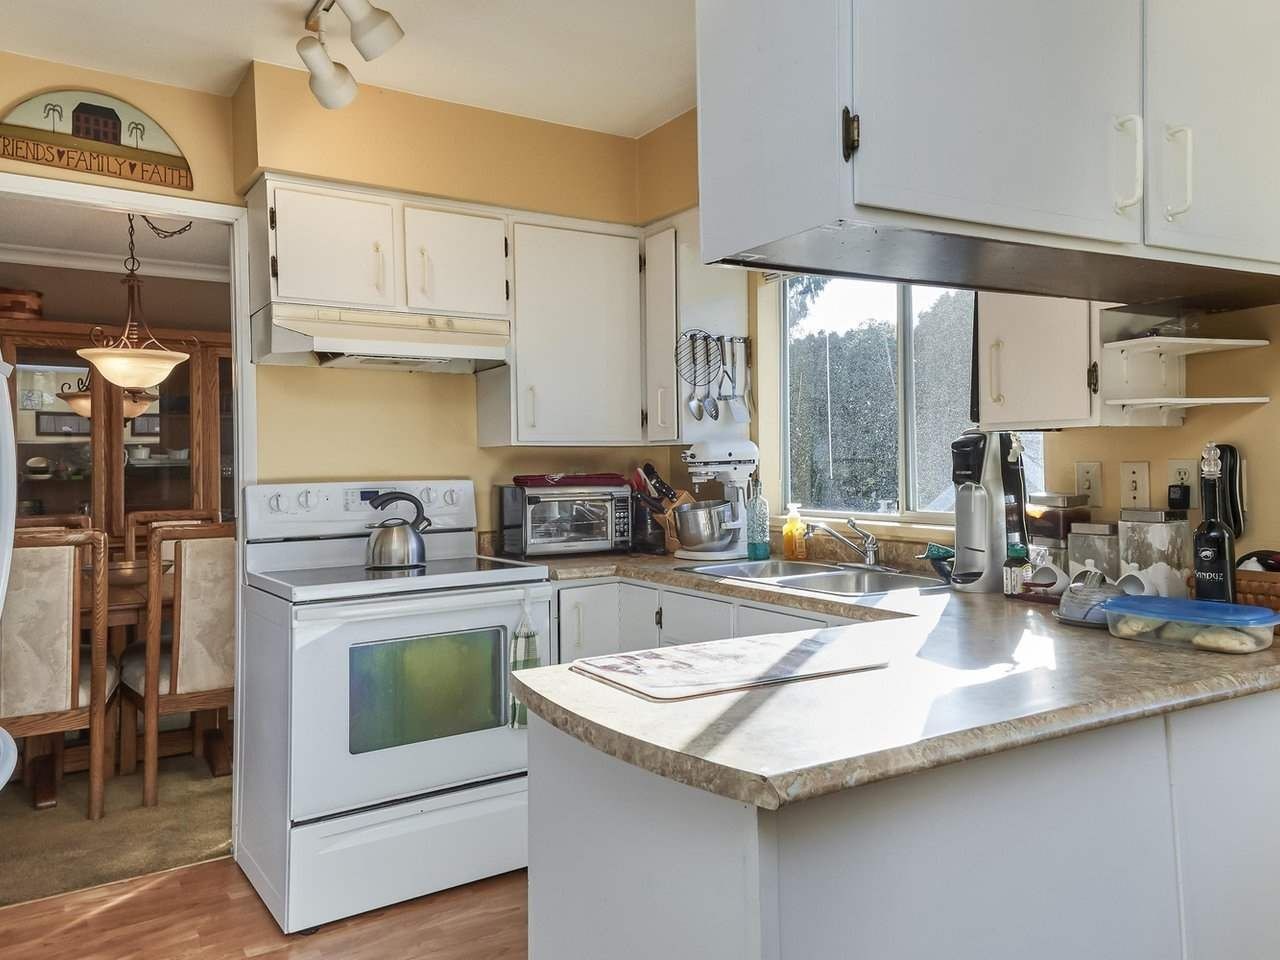 Photo 11: Photos: 4880 FORTUNE AVENUE in Richmond: Steveston North House for sale : MLS®# R2435063